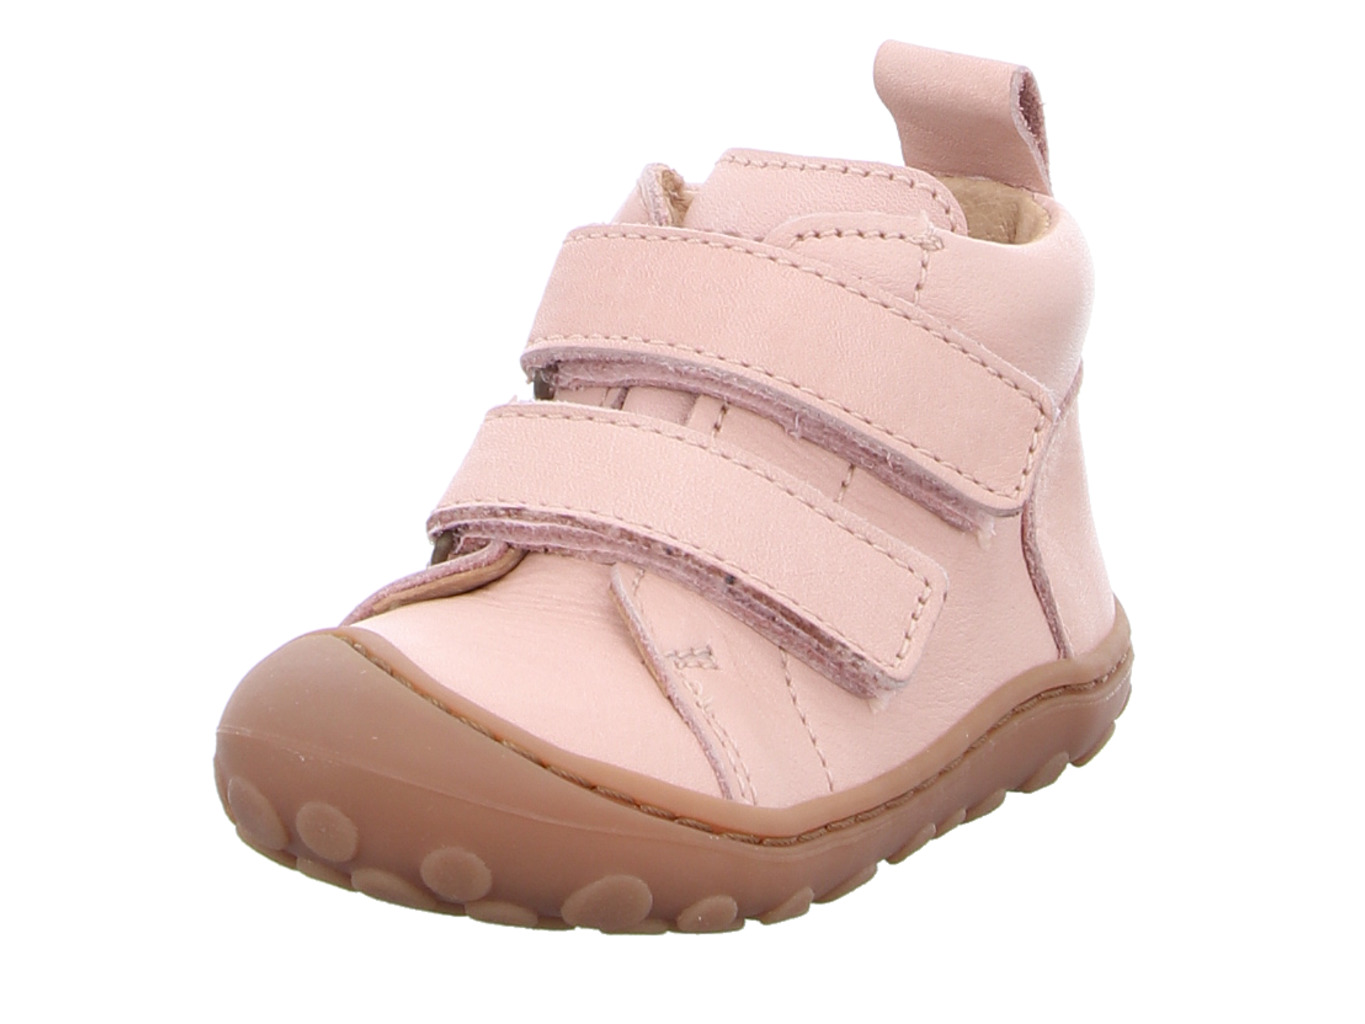 bisgaard_first_step_shoes_rosa_21292_999_94_1158